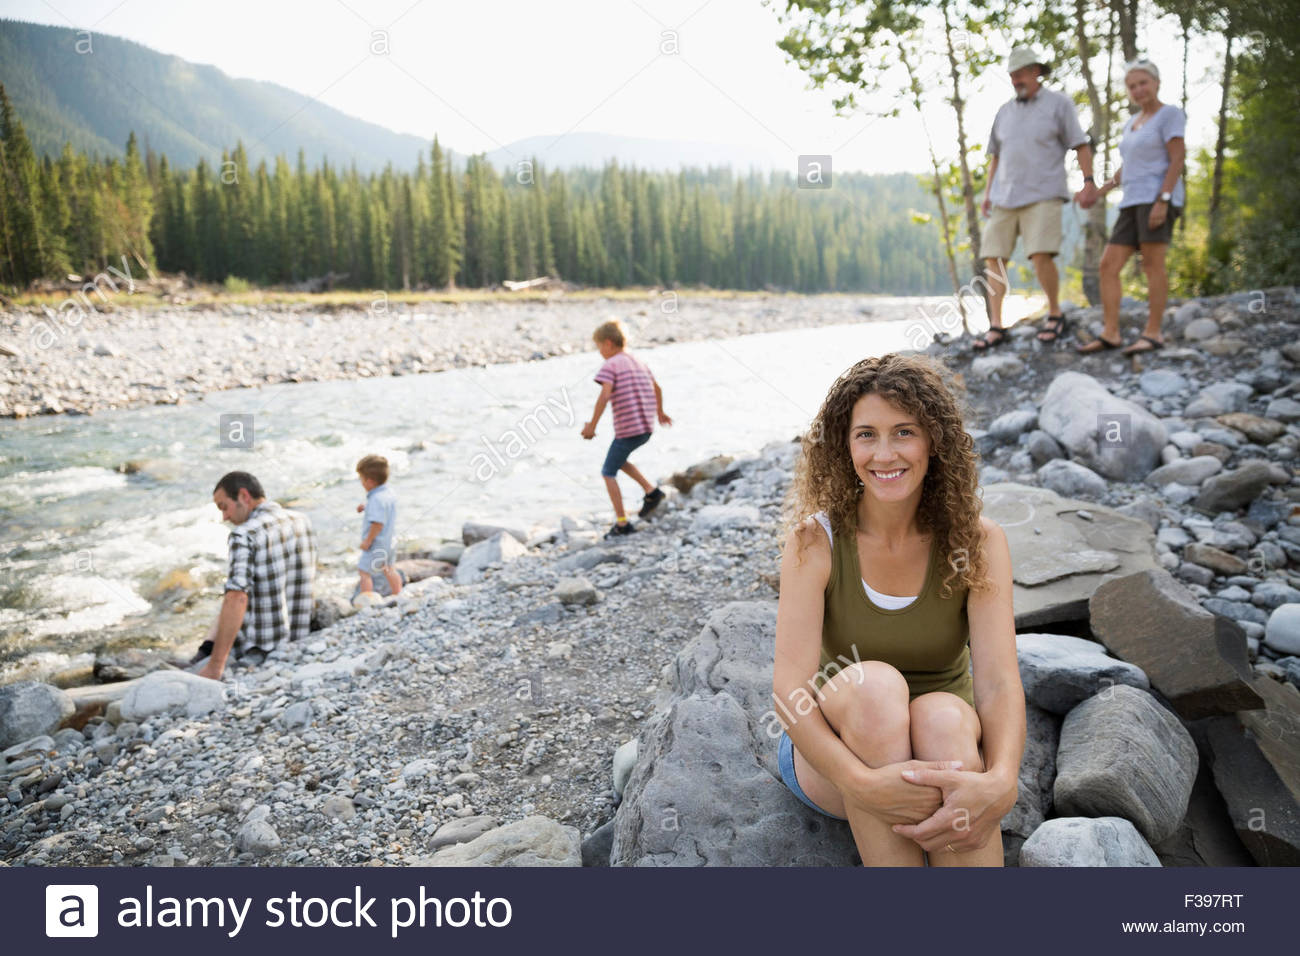 Portrait smiling woman with family at craggy riverside Stock Photo